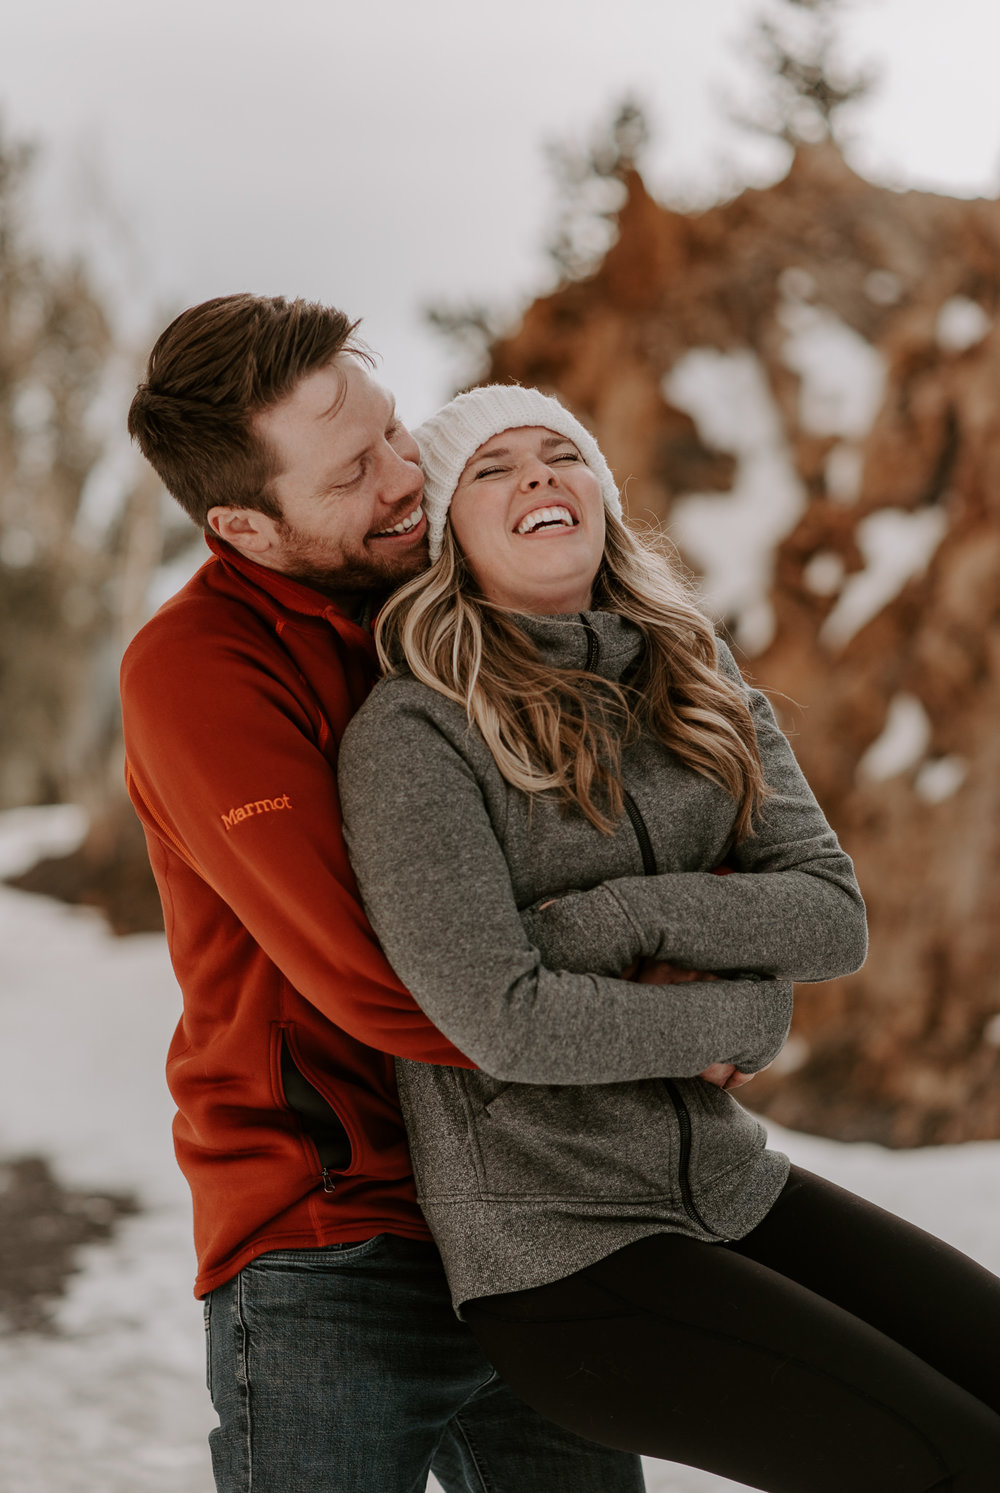 Winter engagement session in Breckenridge, Colorado. Colorado Wedding and elopement photographer.